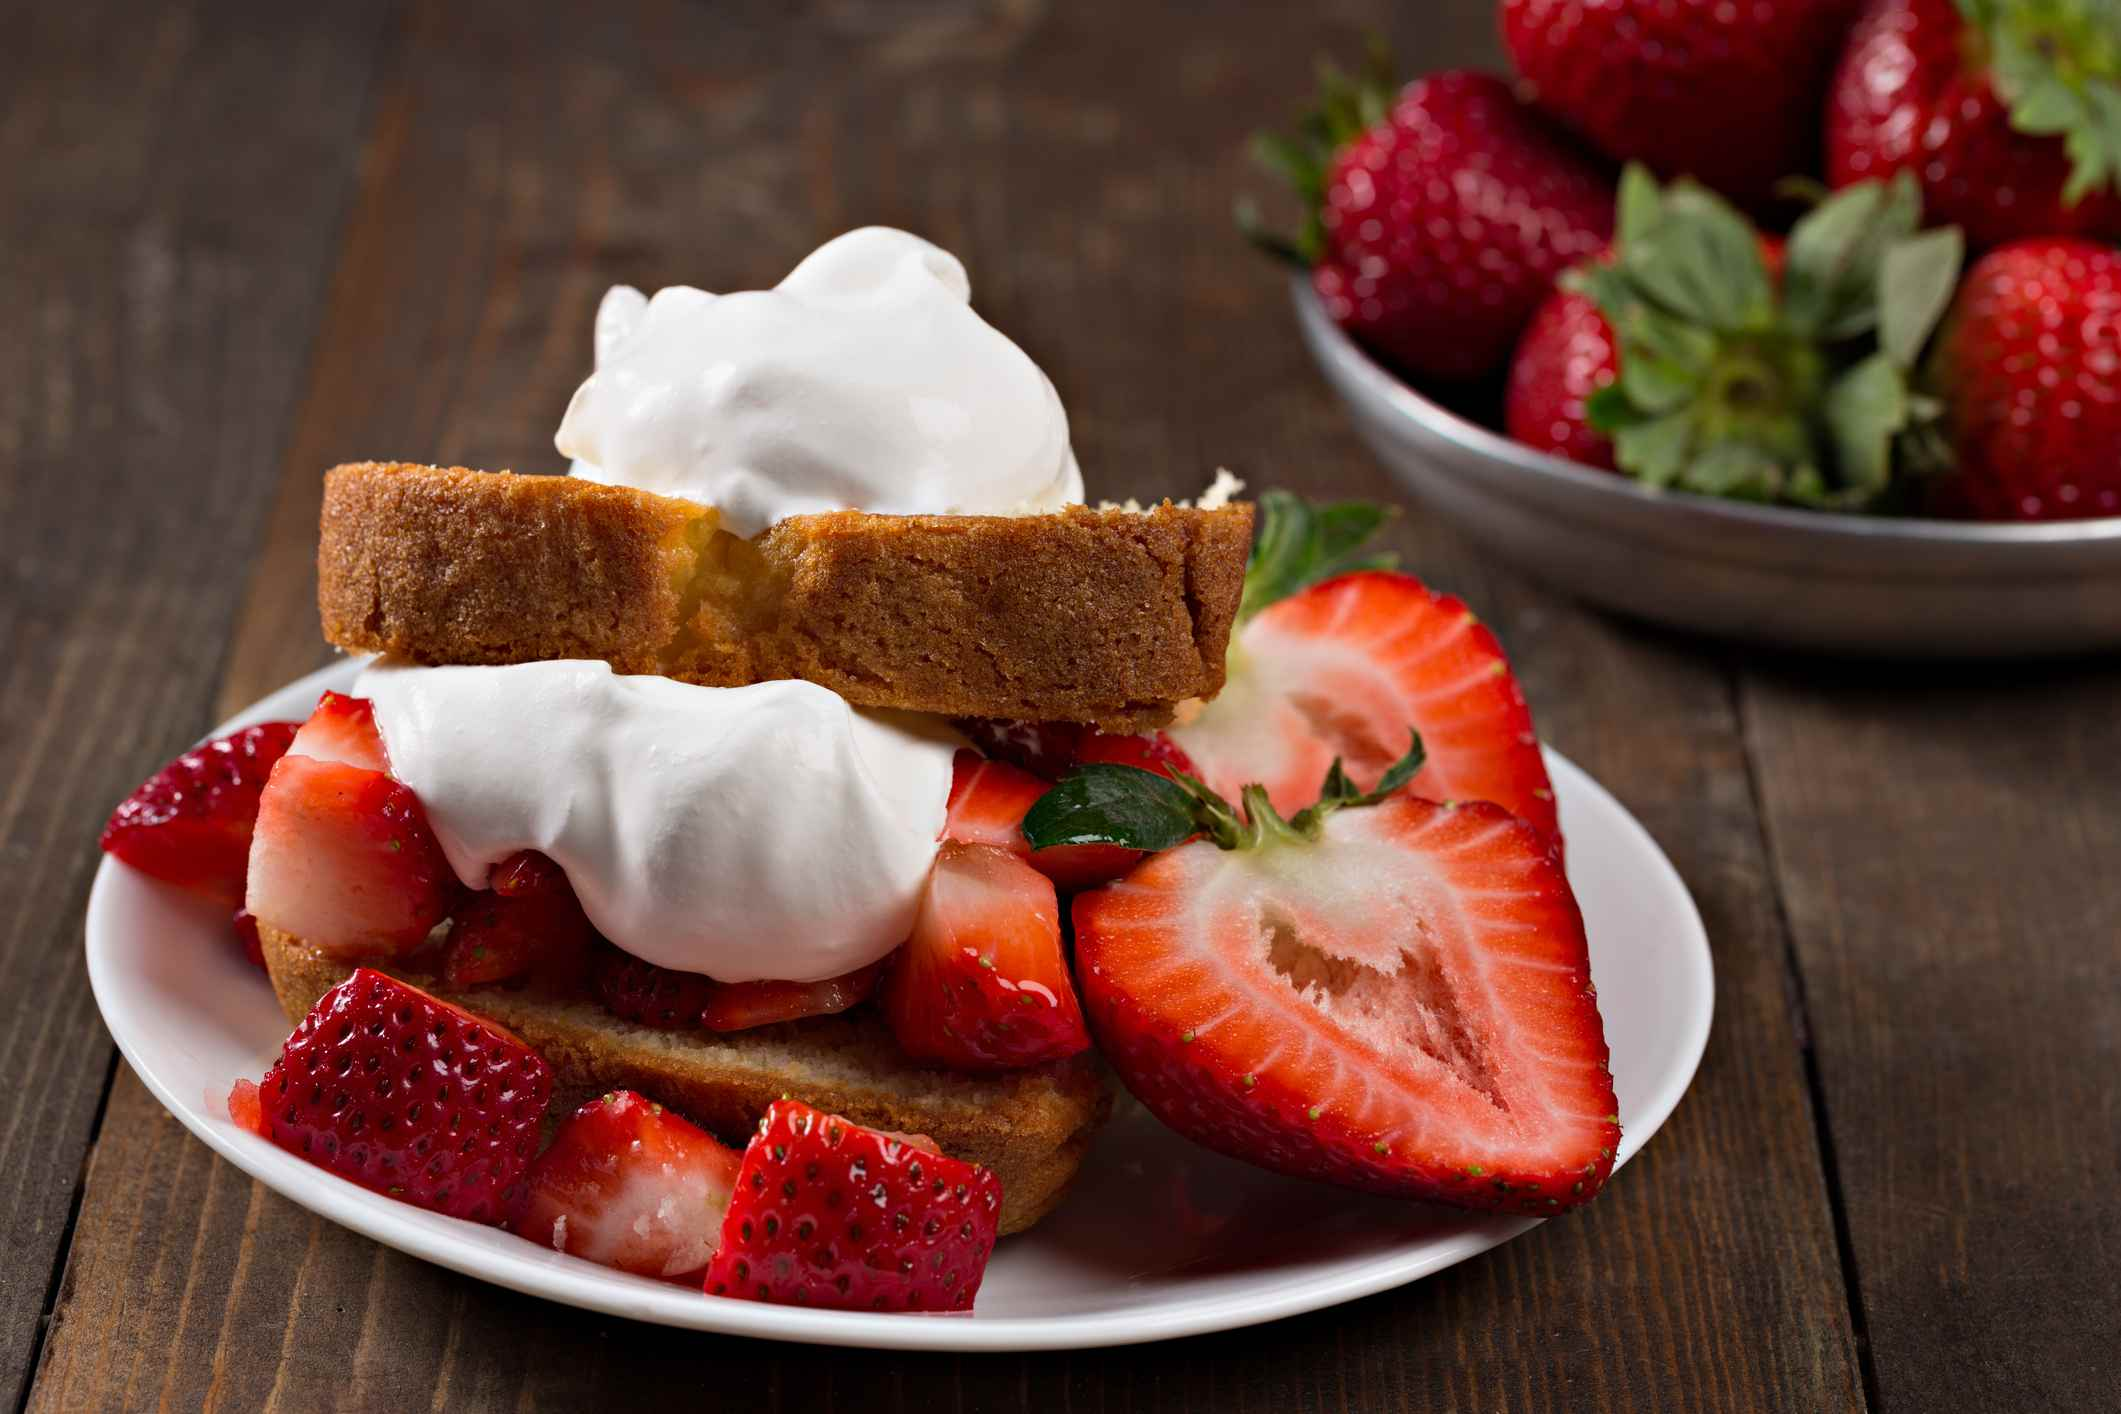 Strawberry Shortcake And Bowl Of Strawberries